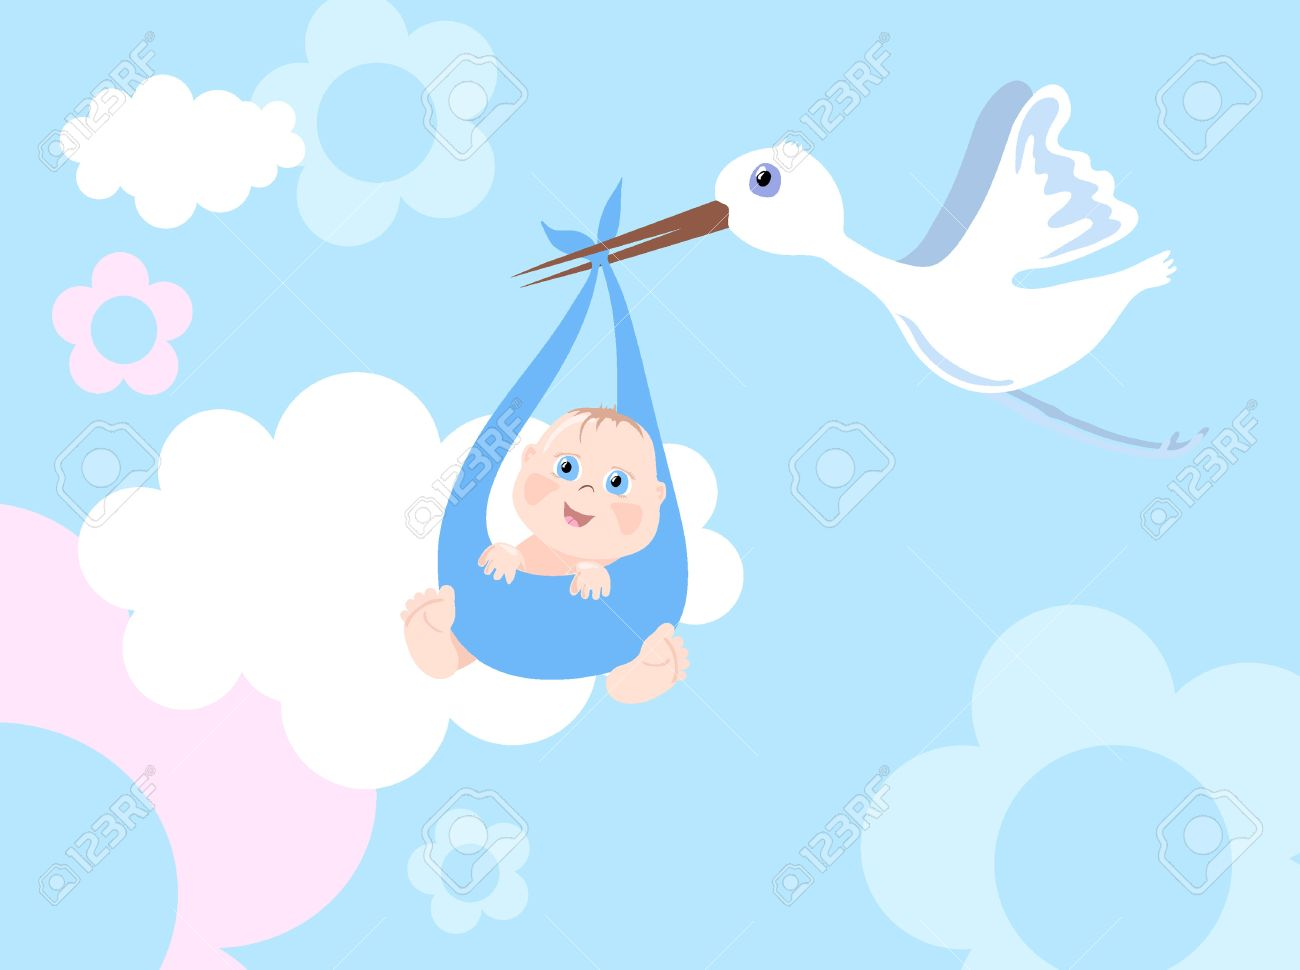 Baby Shower Stork Clipart ~ Vector illustration of stork with infant royalty free cliparts